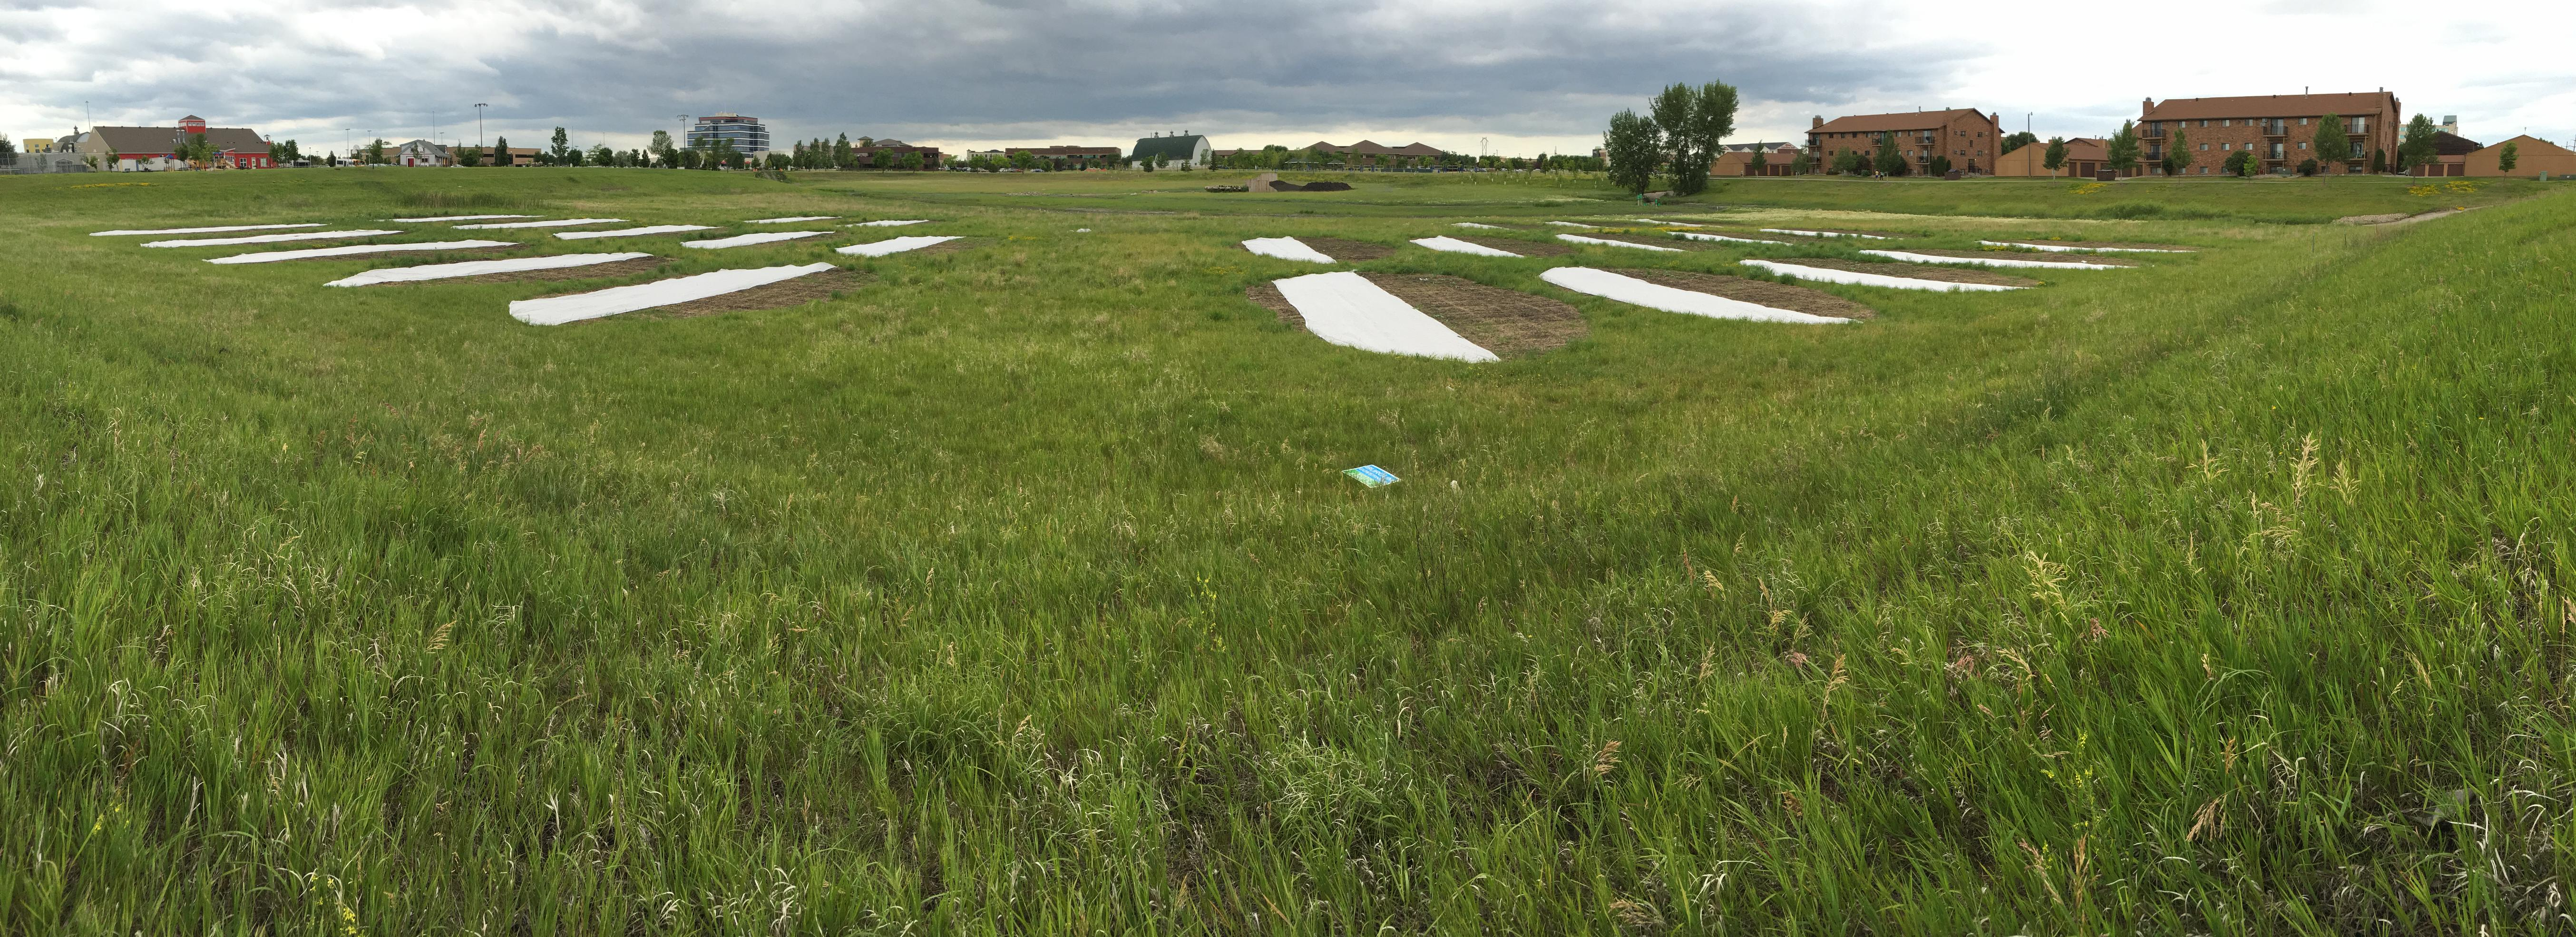 Vegetation plots test establishment, resistance to encroachment, hardiness, and durability for stormwater basins